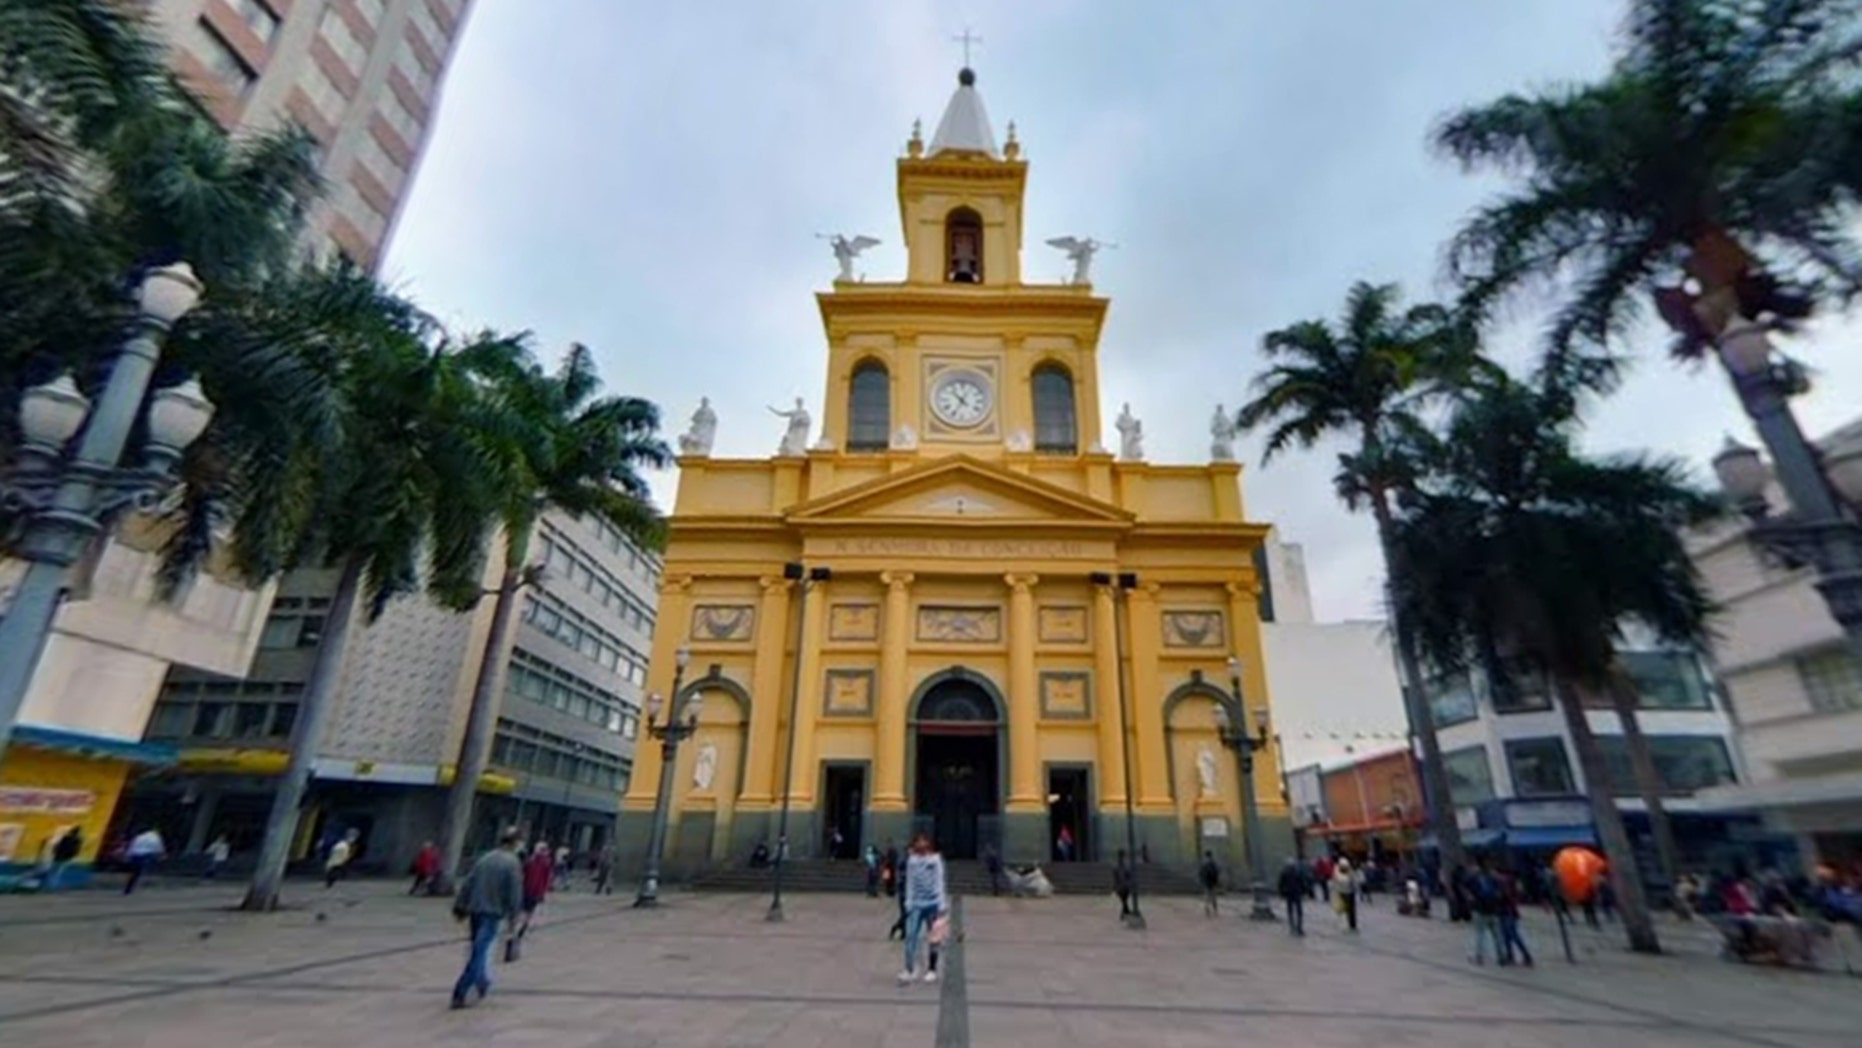 A gunman opened fire inside the Metropolitan Cathedral of Campinas in Brazil, killing four and injuring four before turning the gun on himself.